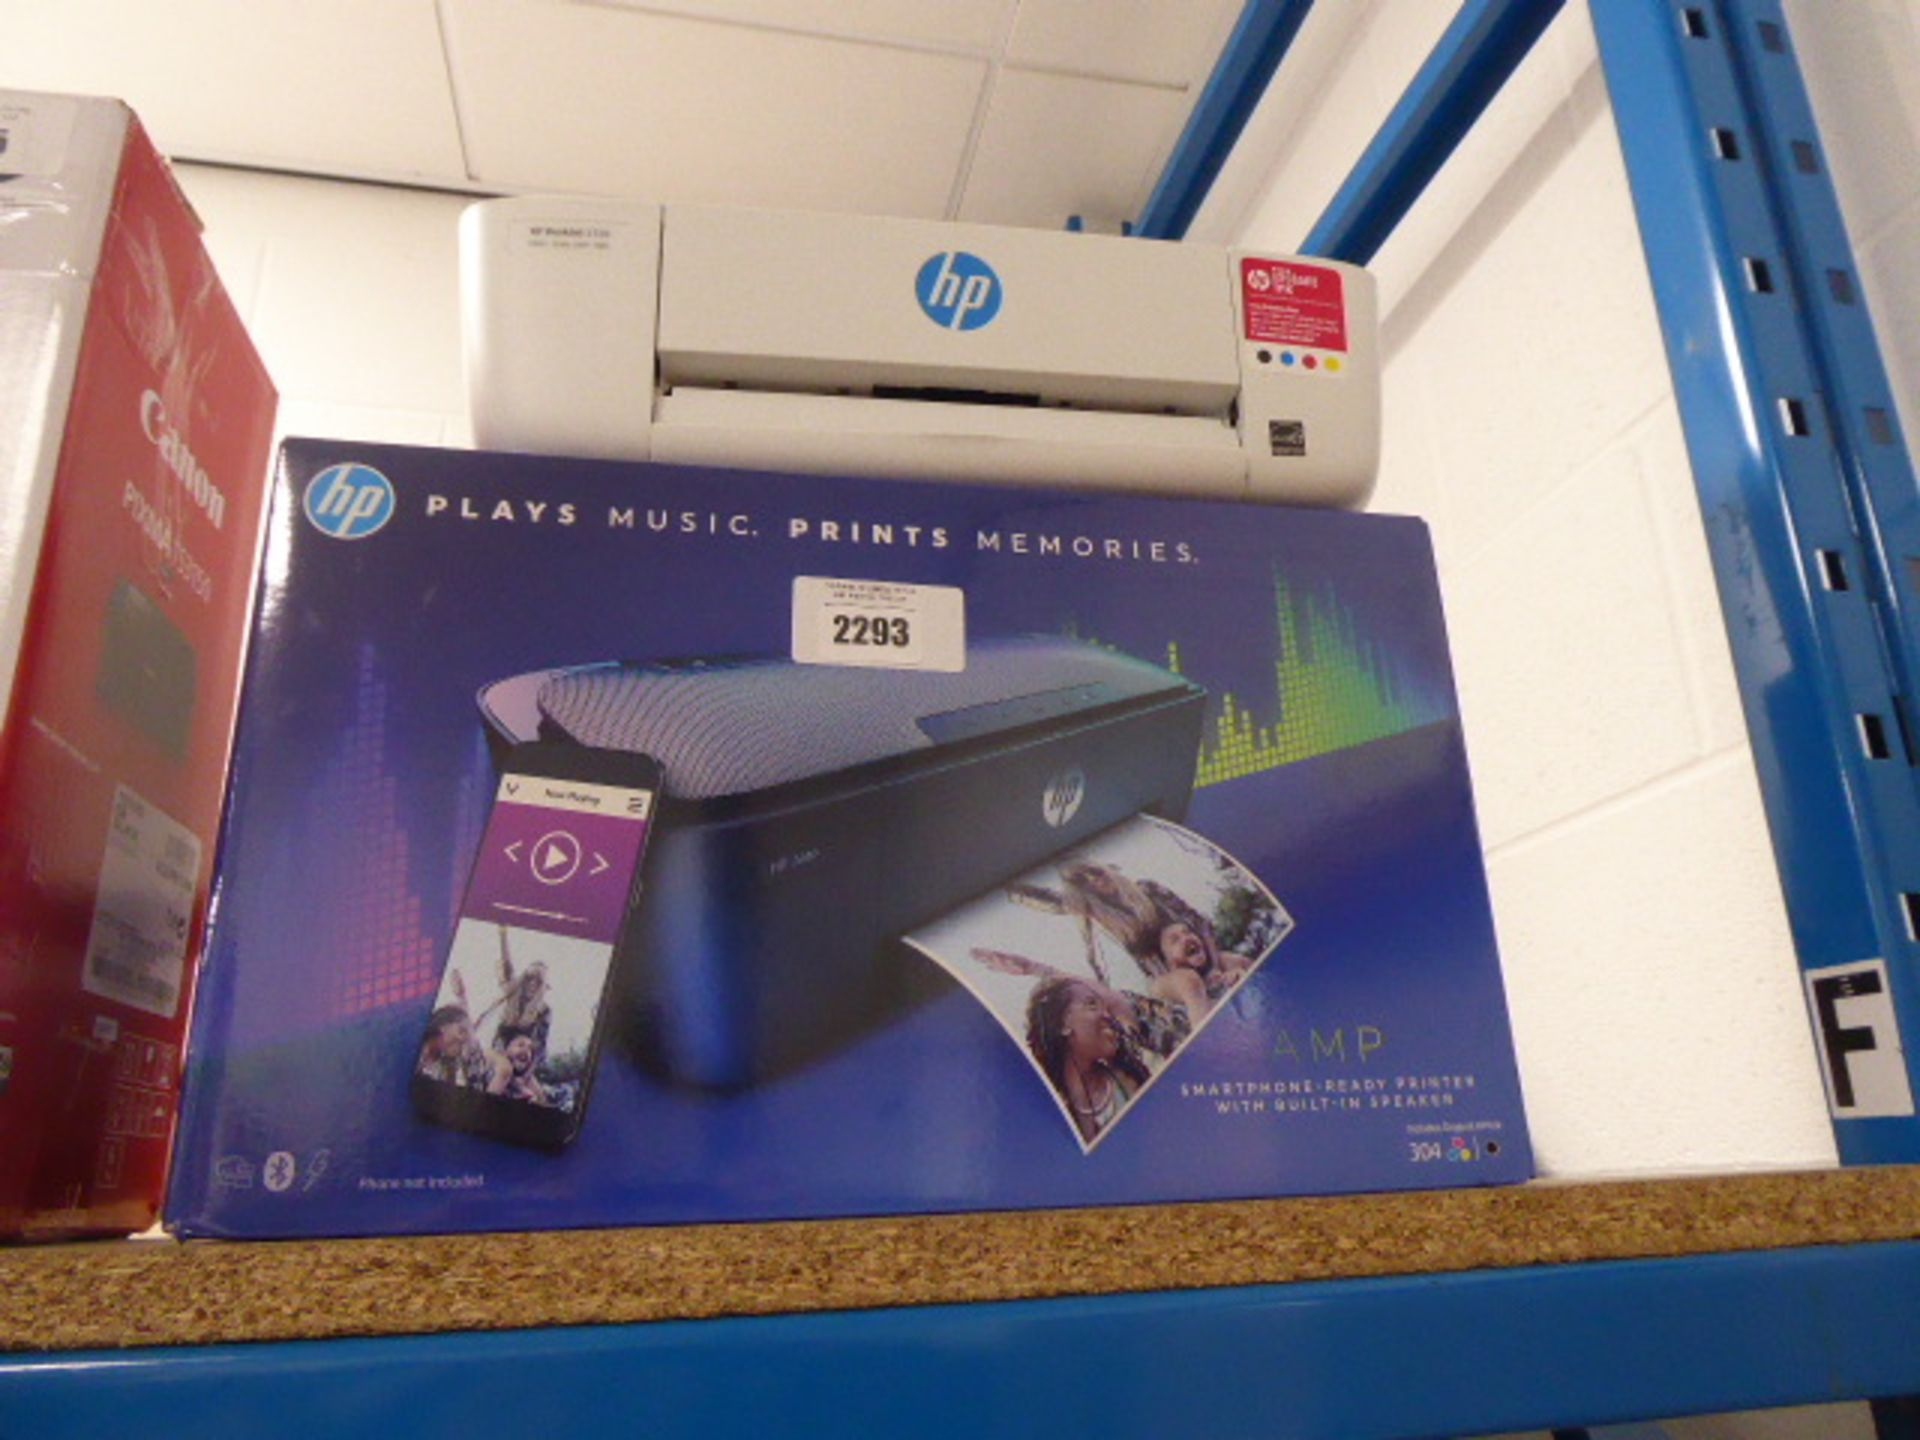 Lotto 2293 - HP Amp bluetooth speaker printer together with another Deskjet 720 printer